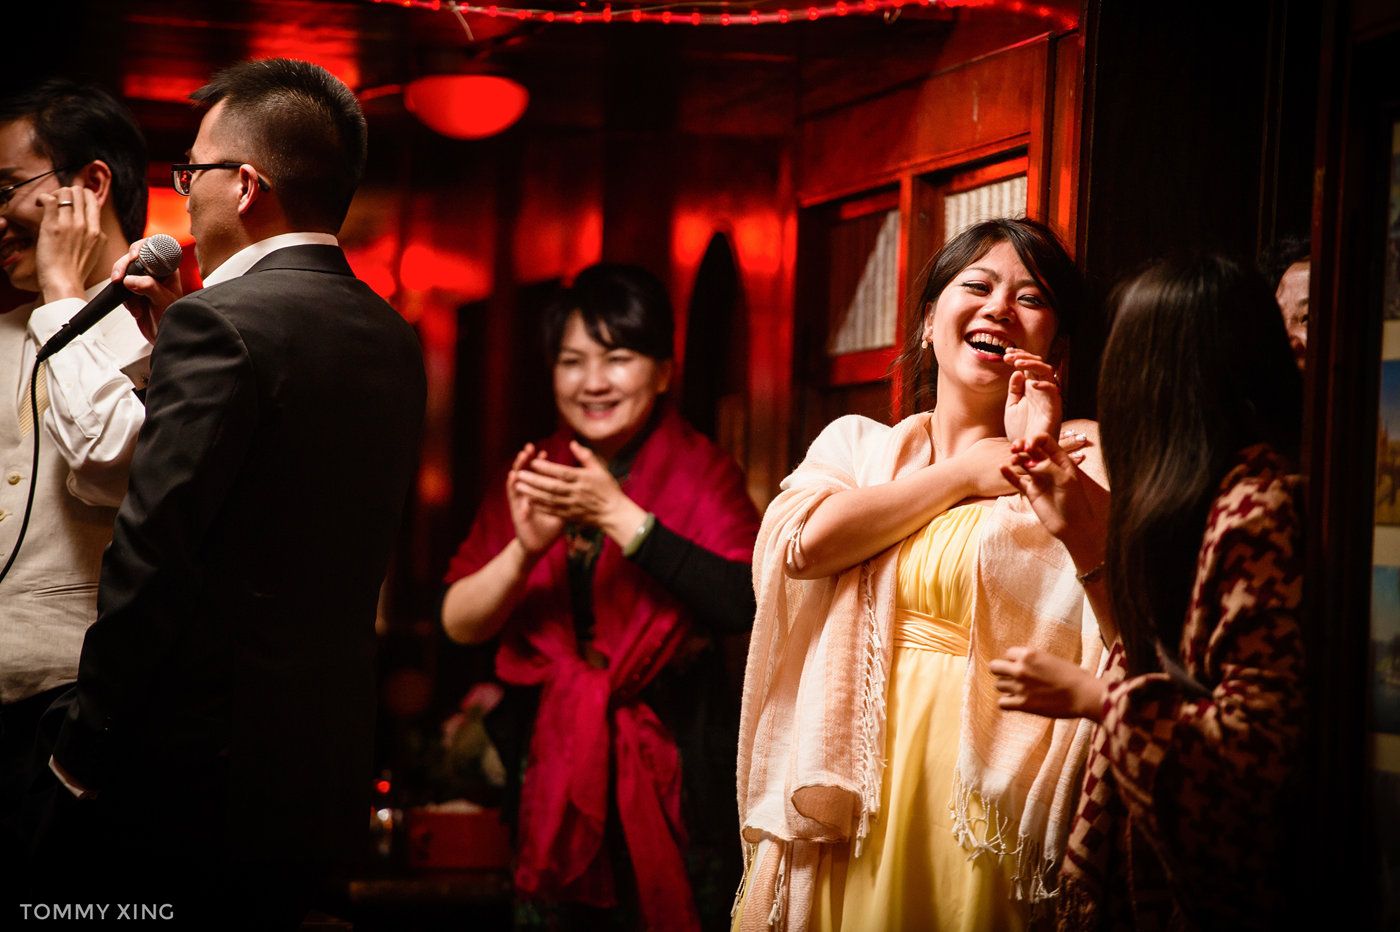 Seattle Wedding and pre wedding Los Angeles Tommy Xing Photography 西雅图洛杉矶旧金山婚礼婚纱照摄影师 210.jpg